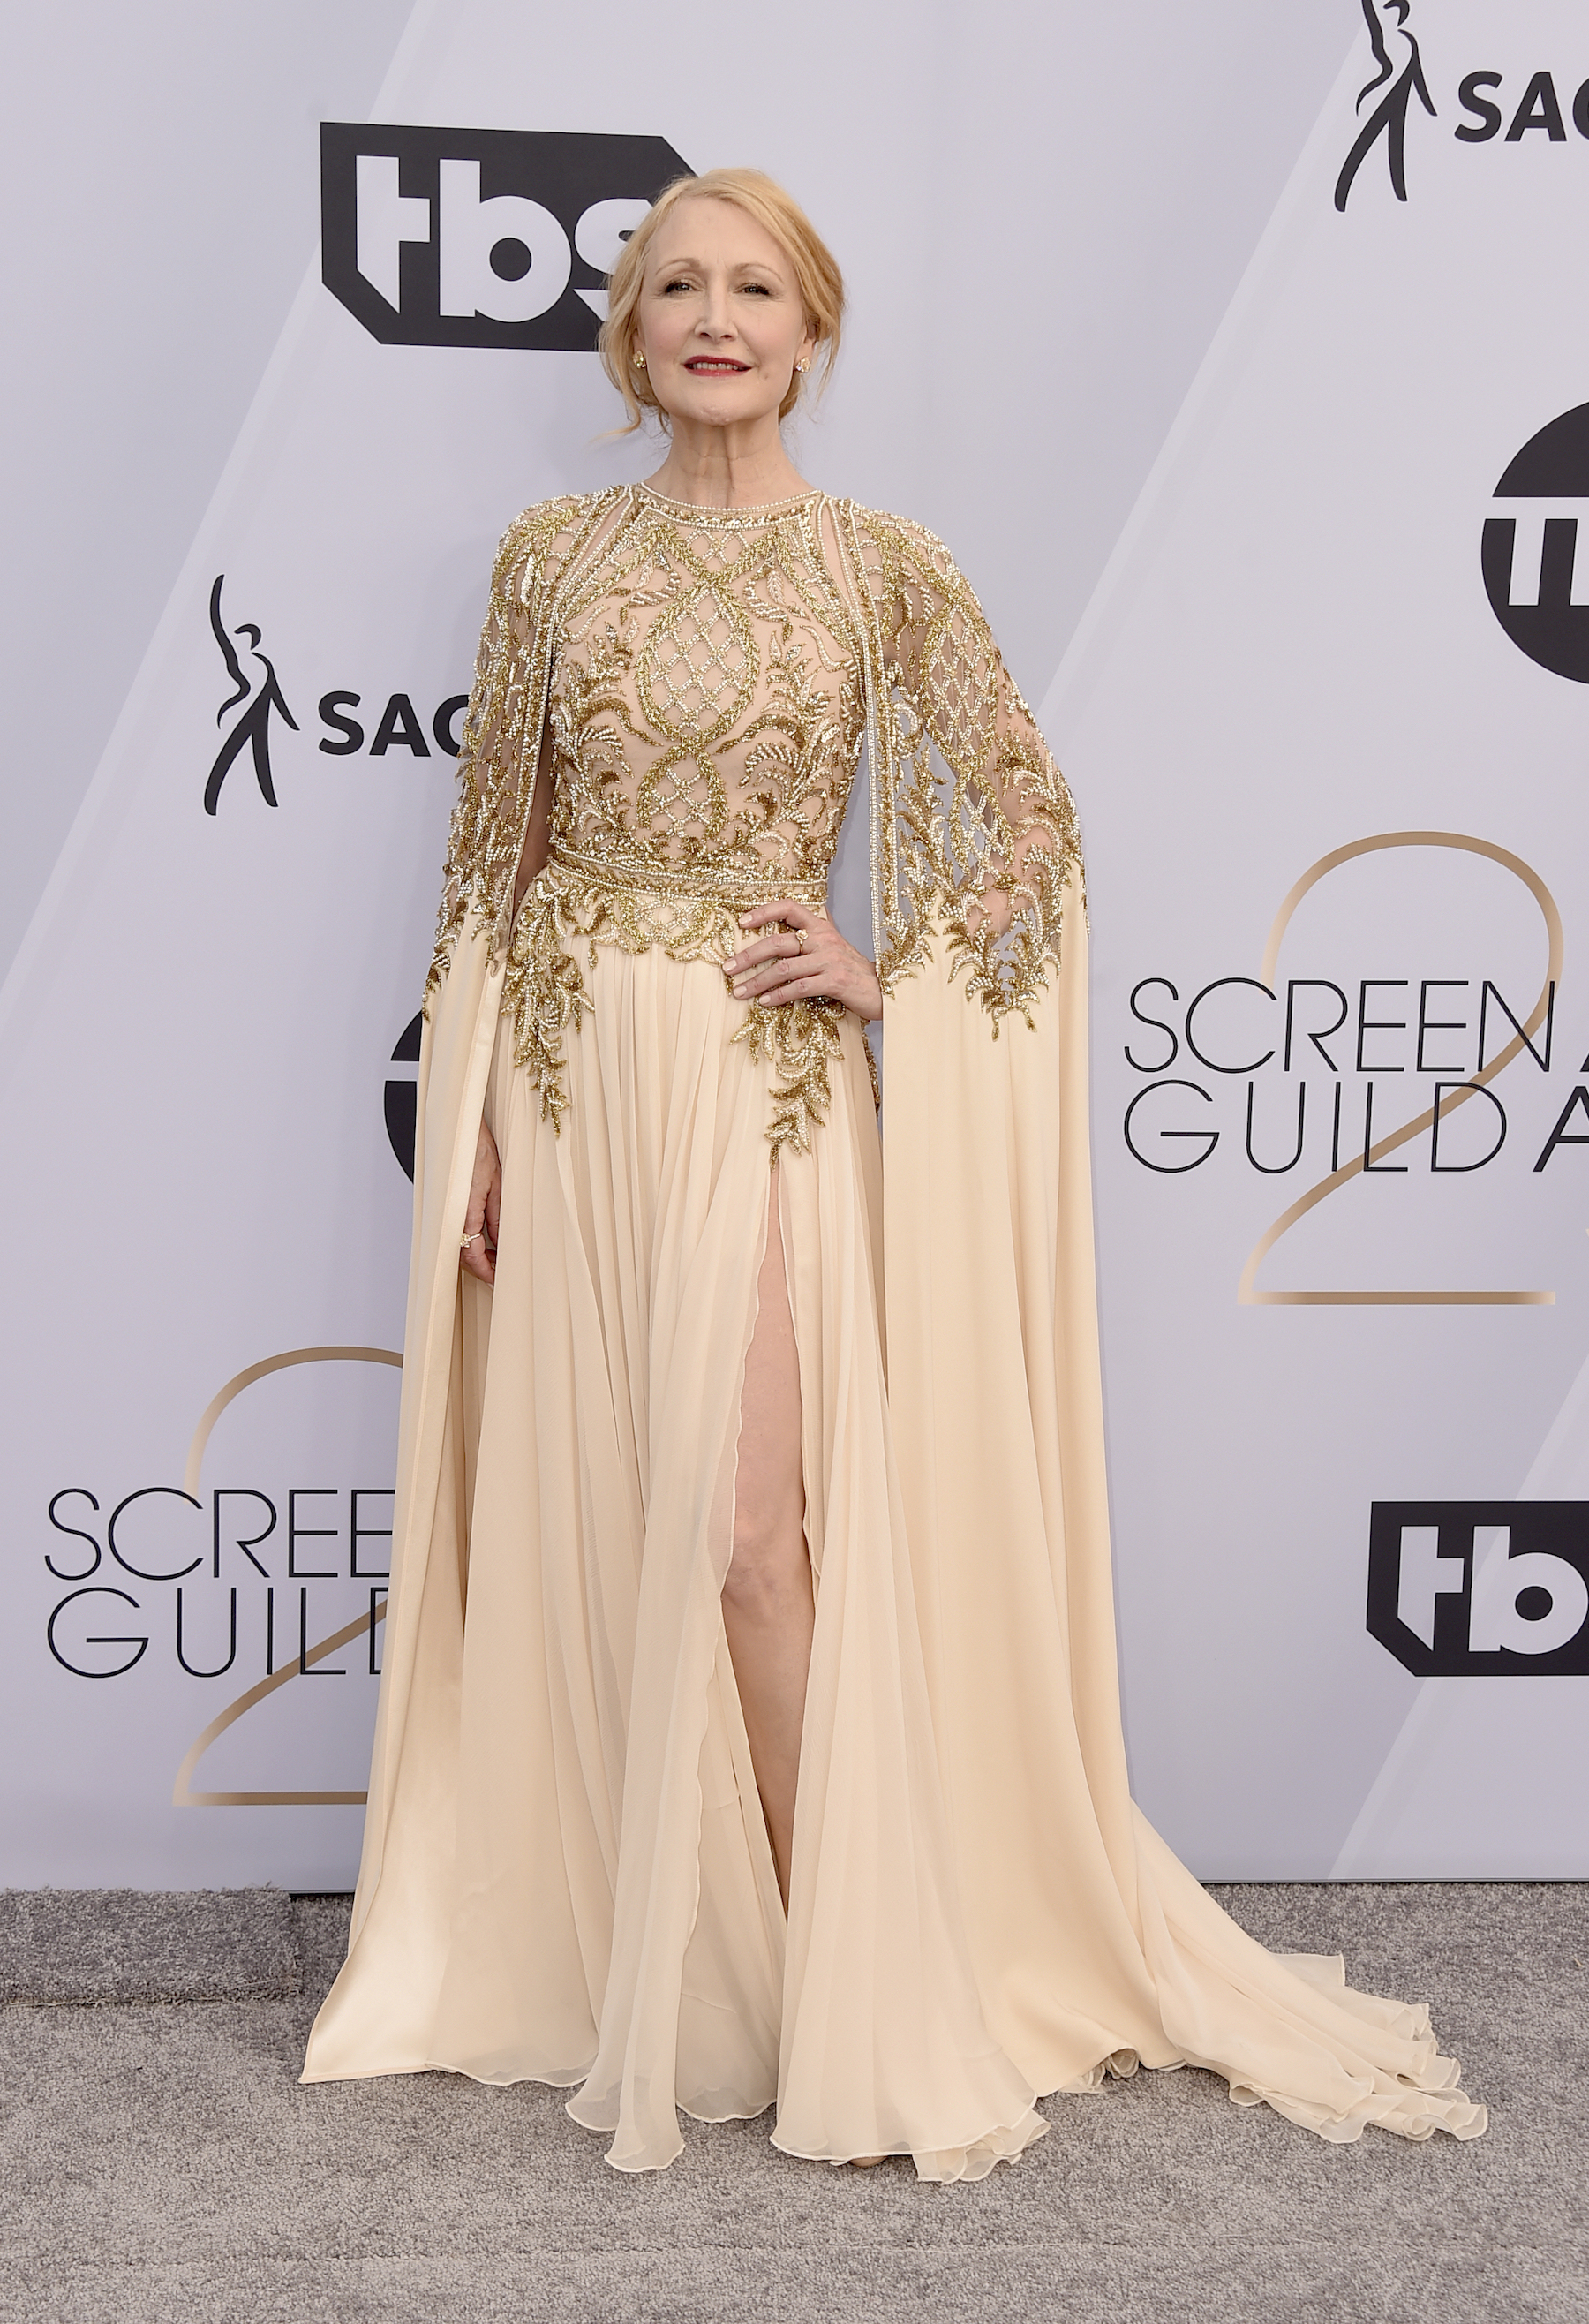 "<div class=""meta image-caption""><div class=""origin-logo origin-image ap""><span>AP</span></div><span class=""caption-text"">Patricia Clarkson arrives at the 25th annual Screen Actors Guild Awards at the Shrine Auditorium & Expo Hall on Sunday, Jan. 27, 2019, in Los Angeles. (Jordan Strauss/Invision/AP)</span></div>"